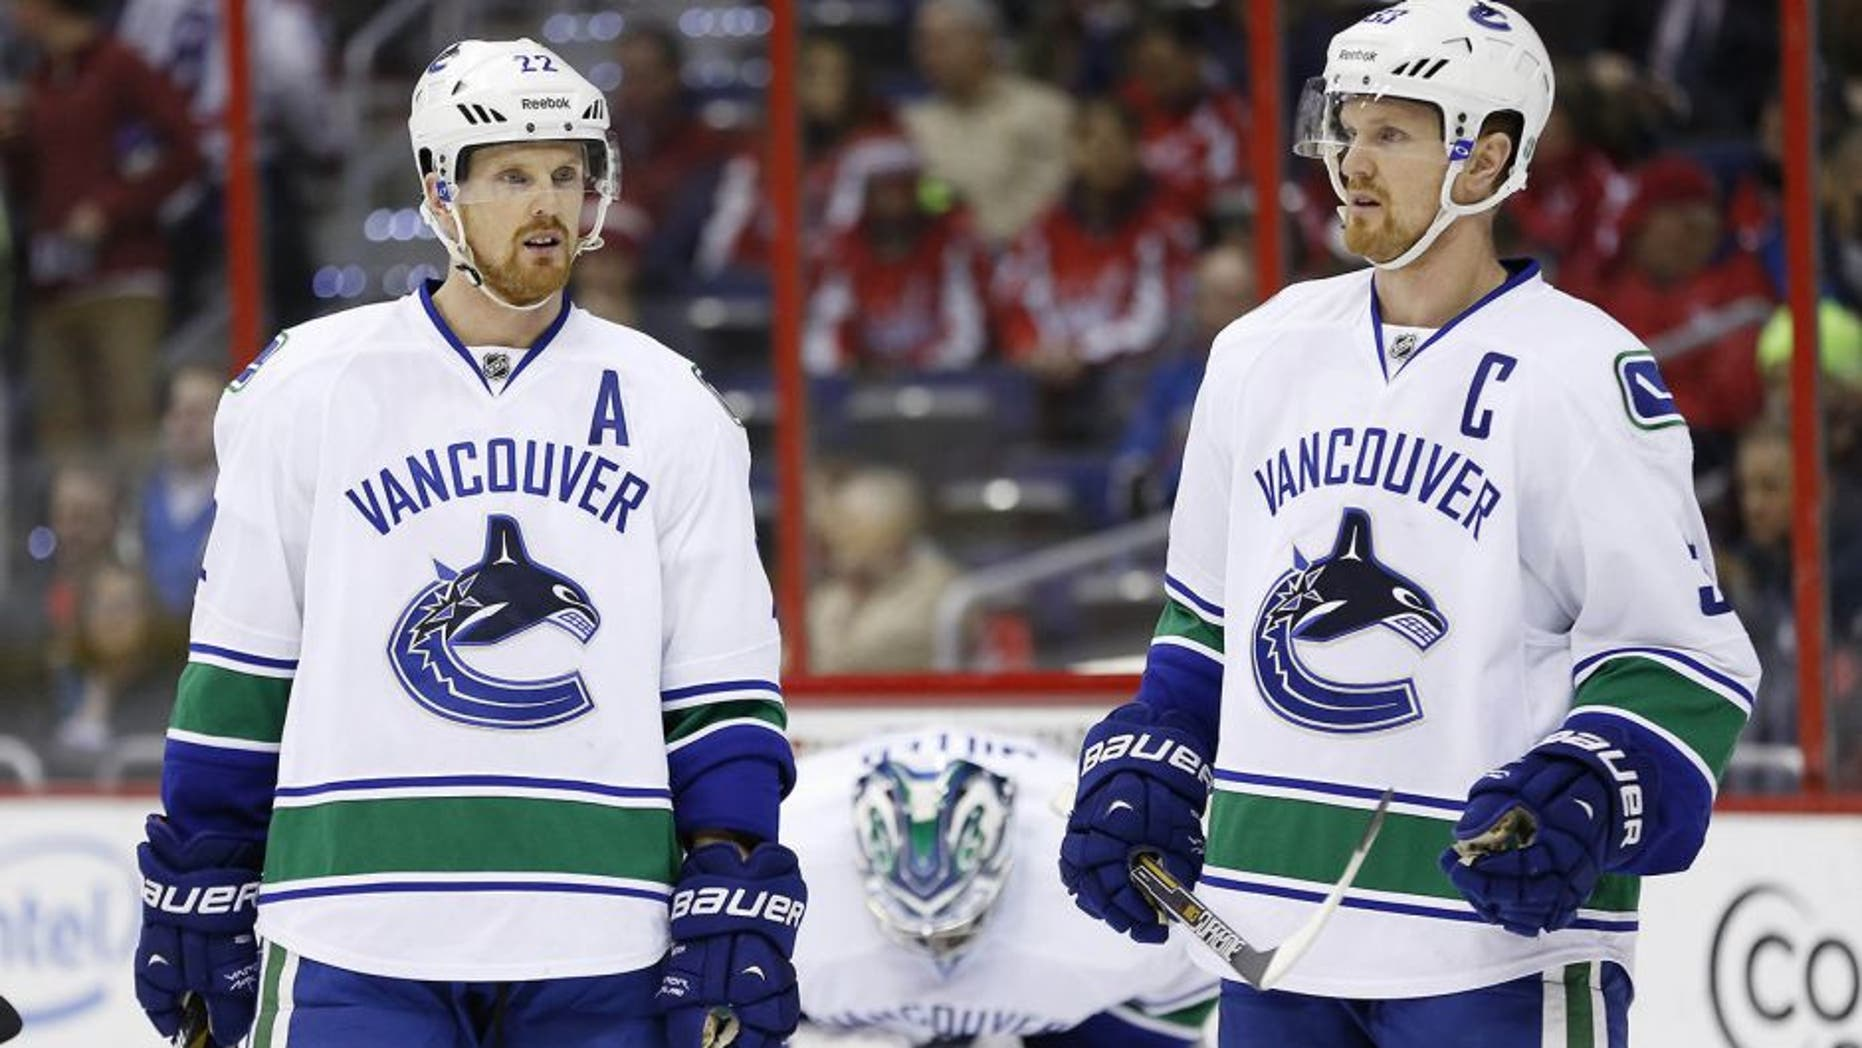 Dec 2, 2014; Washington, DC, USA; Vancouver Canucks left wing Daniel Sedin (22) and Canucks center Henrik Sedin (33) stand on the ice against the Washington Capitals in the first period at Verizon Center. Mandatory Credit: Geoff Burke-USA TODAY Sports